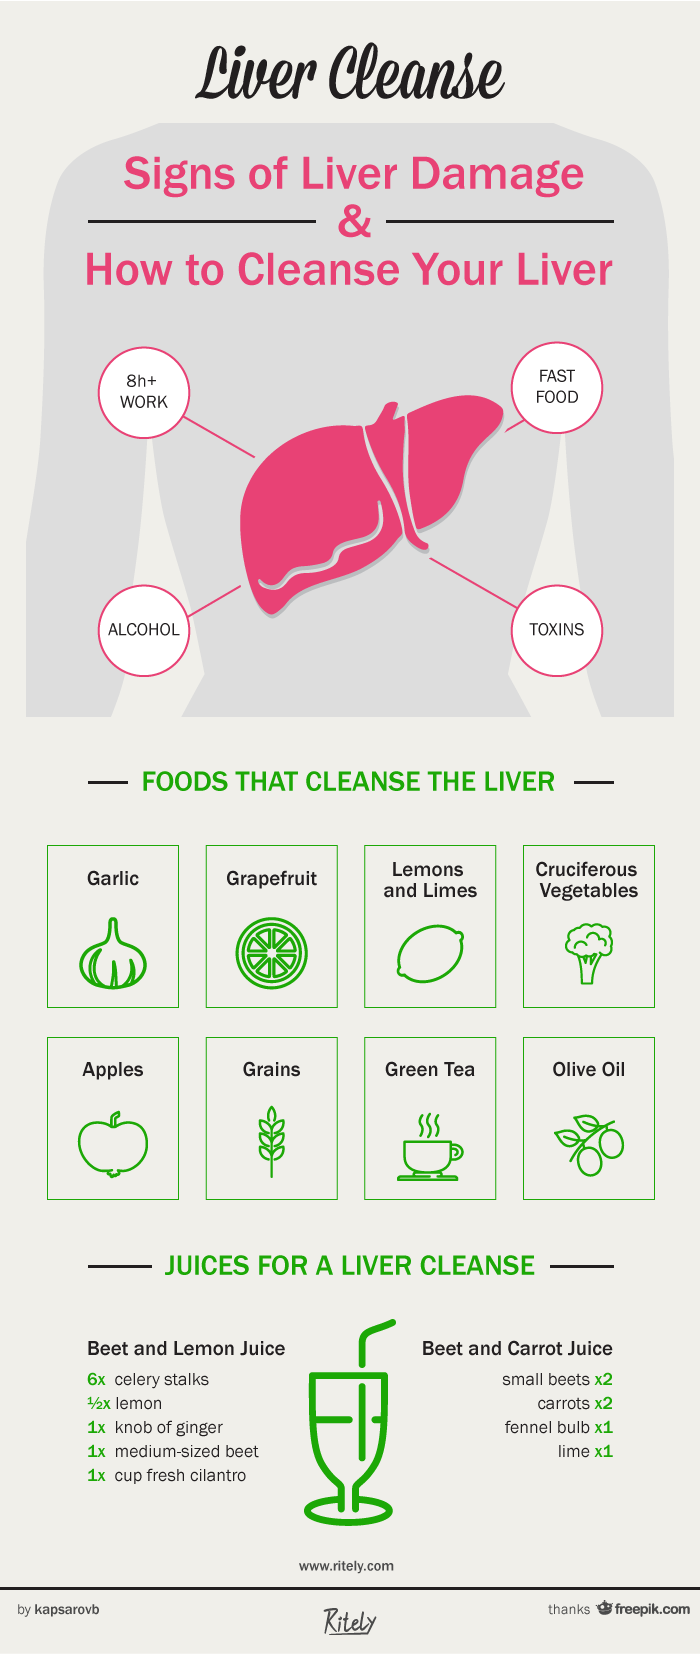 Liver Cleanse: Signs of Liver Damage and How to Cleanse Your Liver